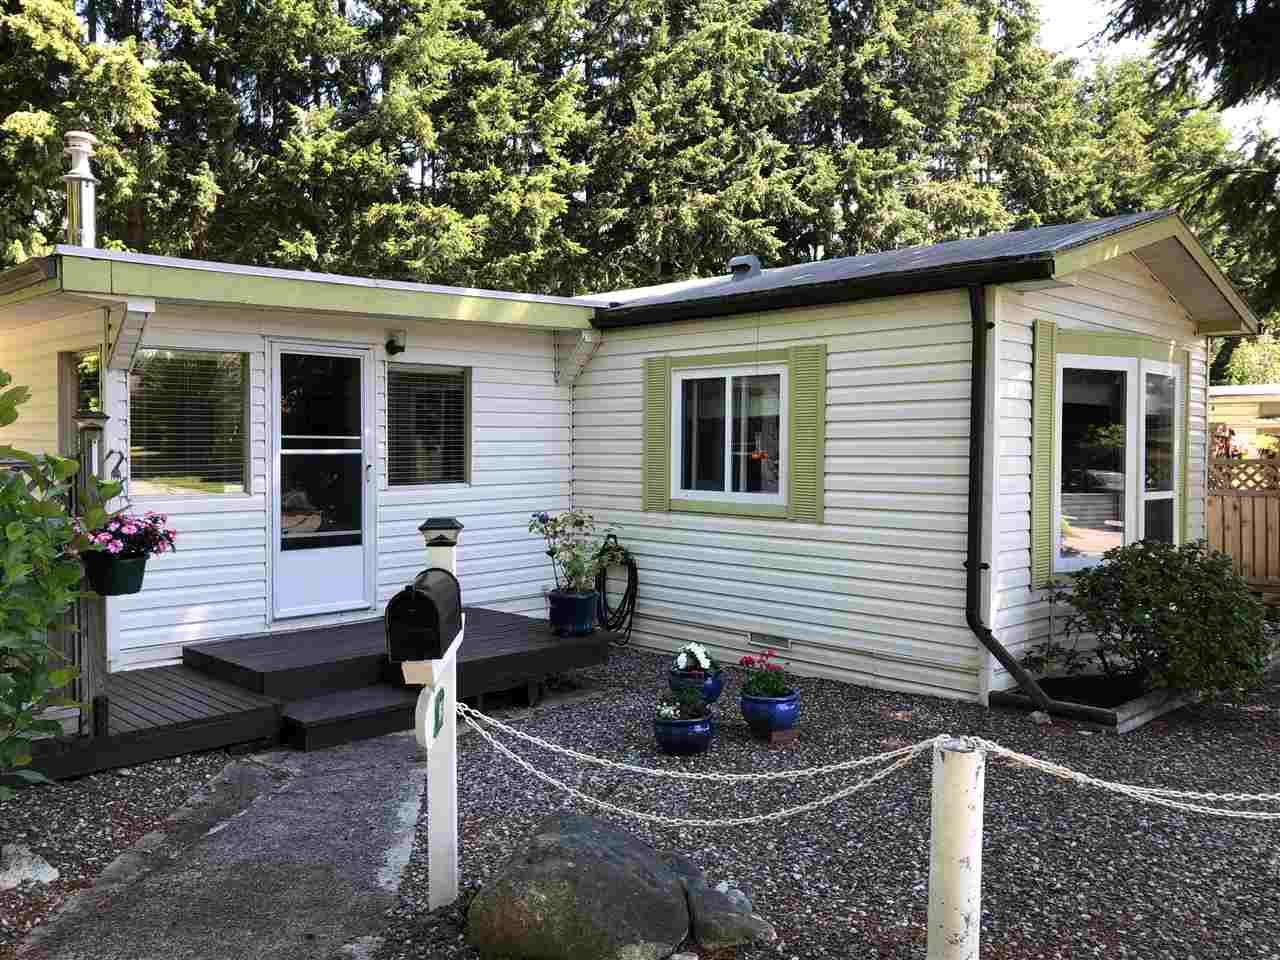 """Main Photo: 45 4116 BROWNING Road in Sechelt: Sechelt District Manufactured Home for sale in """"ROCKLAND WYND"""" (Sunshine Coast)  : MLS®# R2472545"""